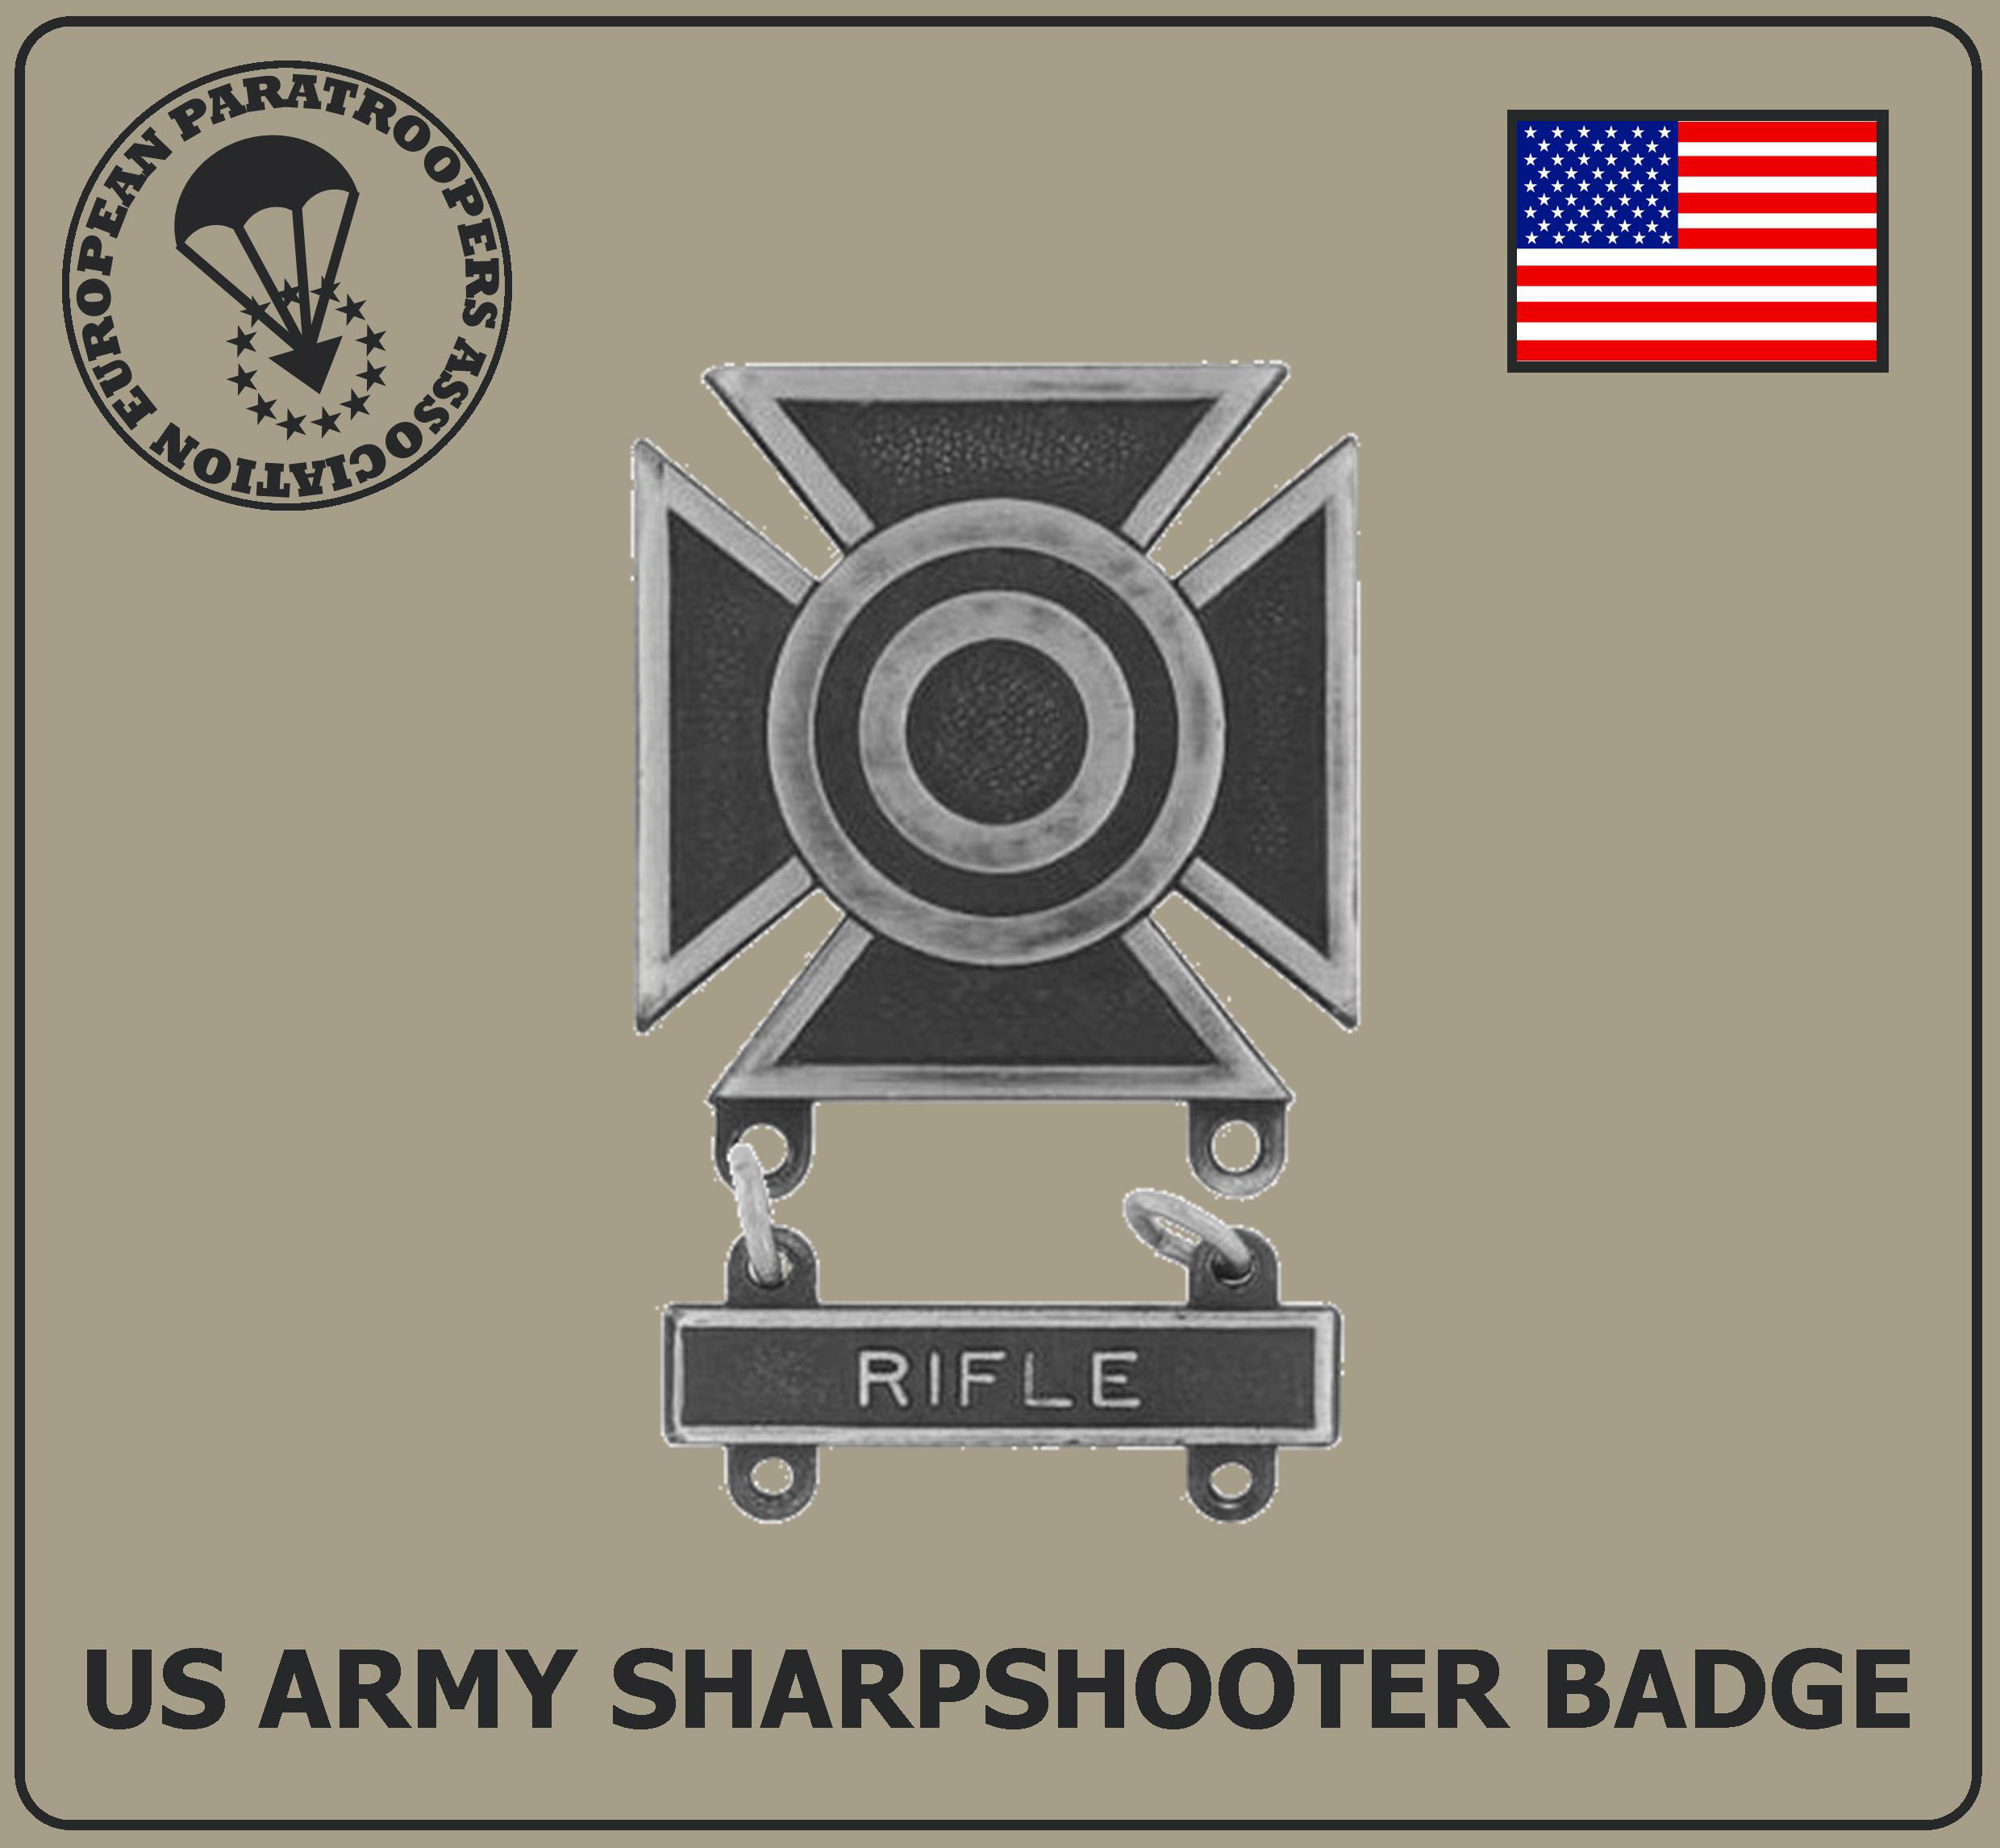 US ARMY SHARPSHOOTER BADGE R